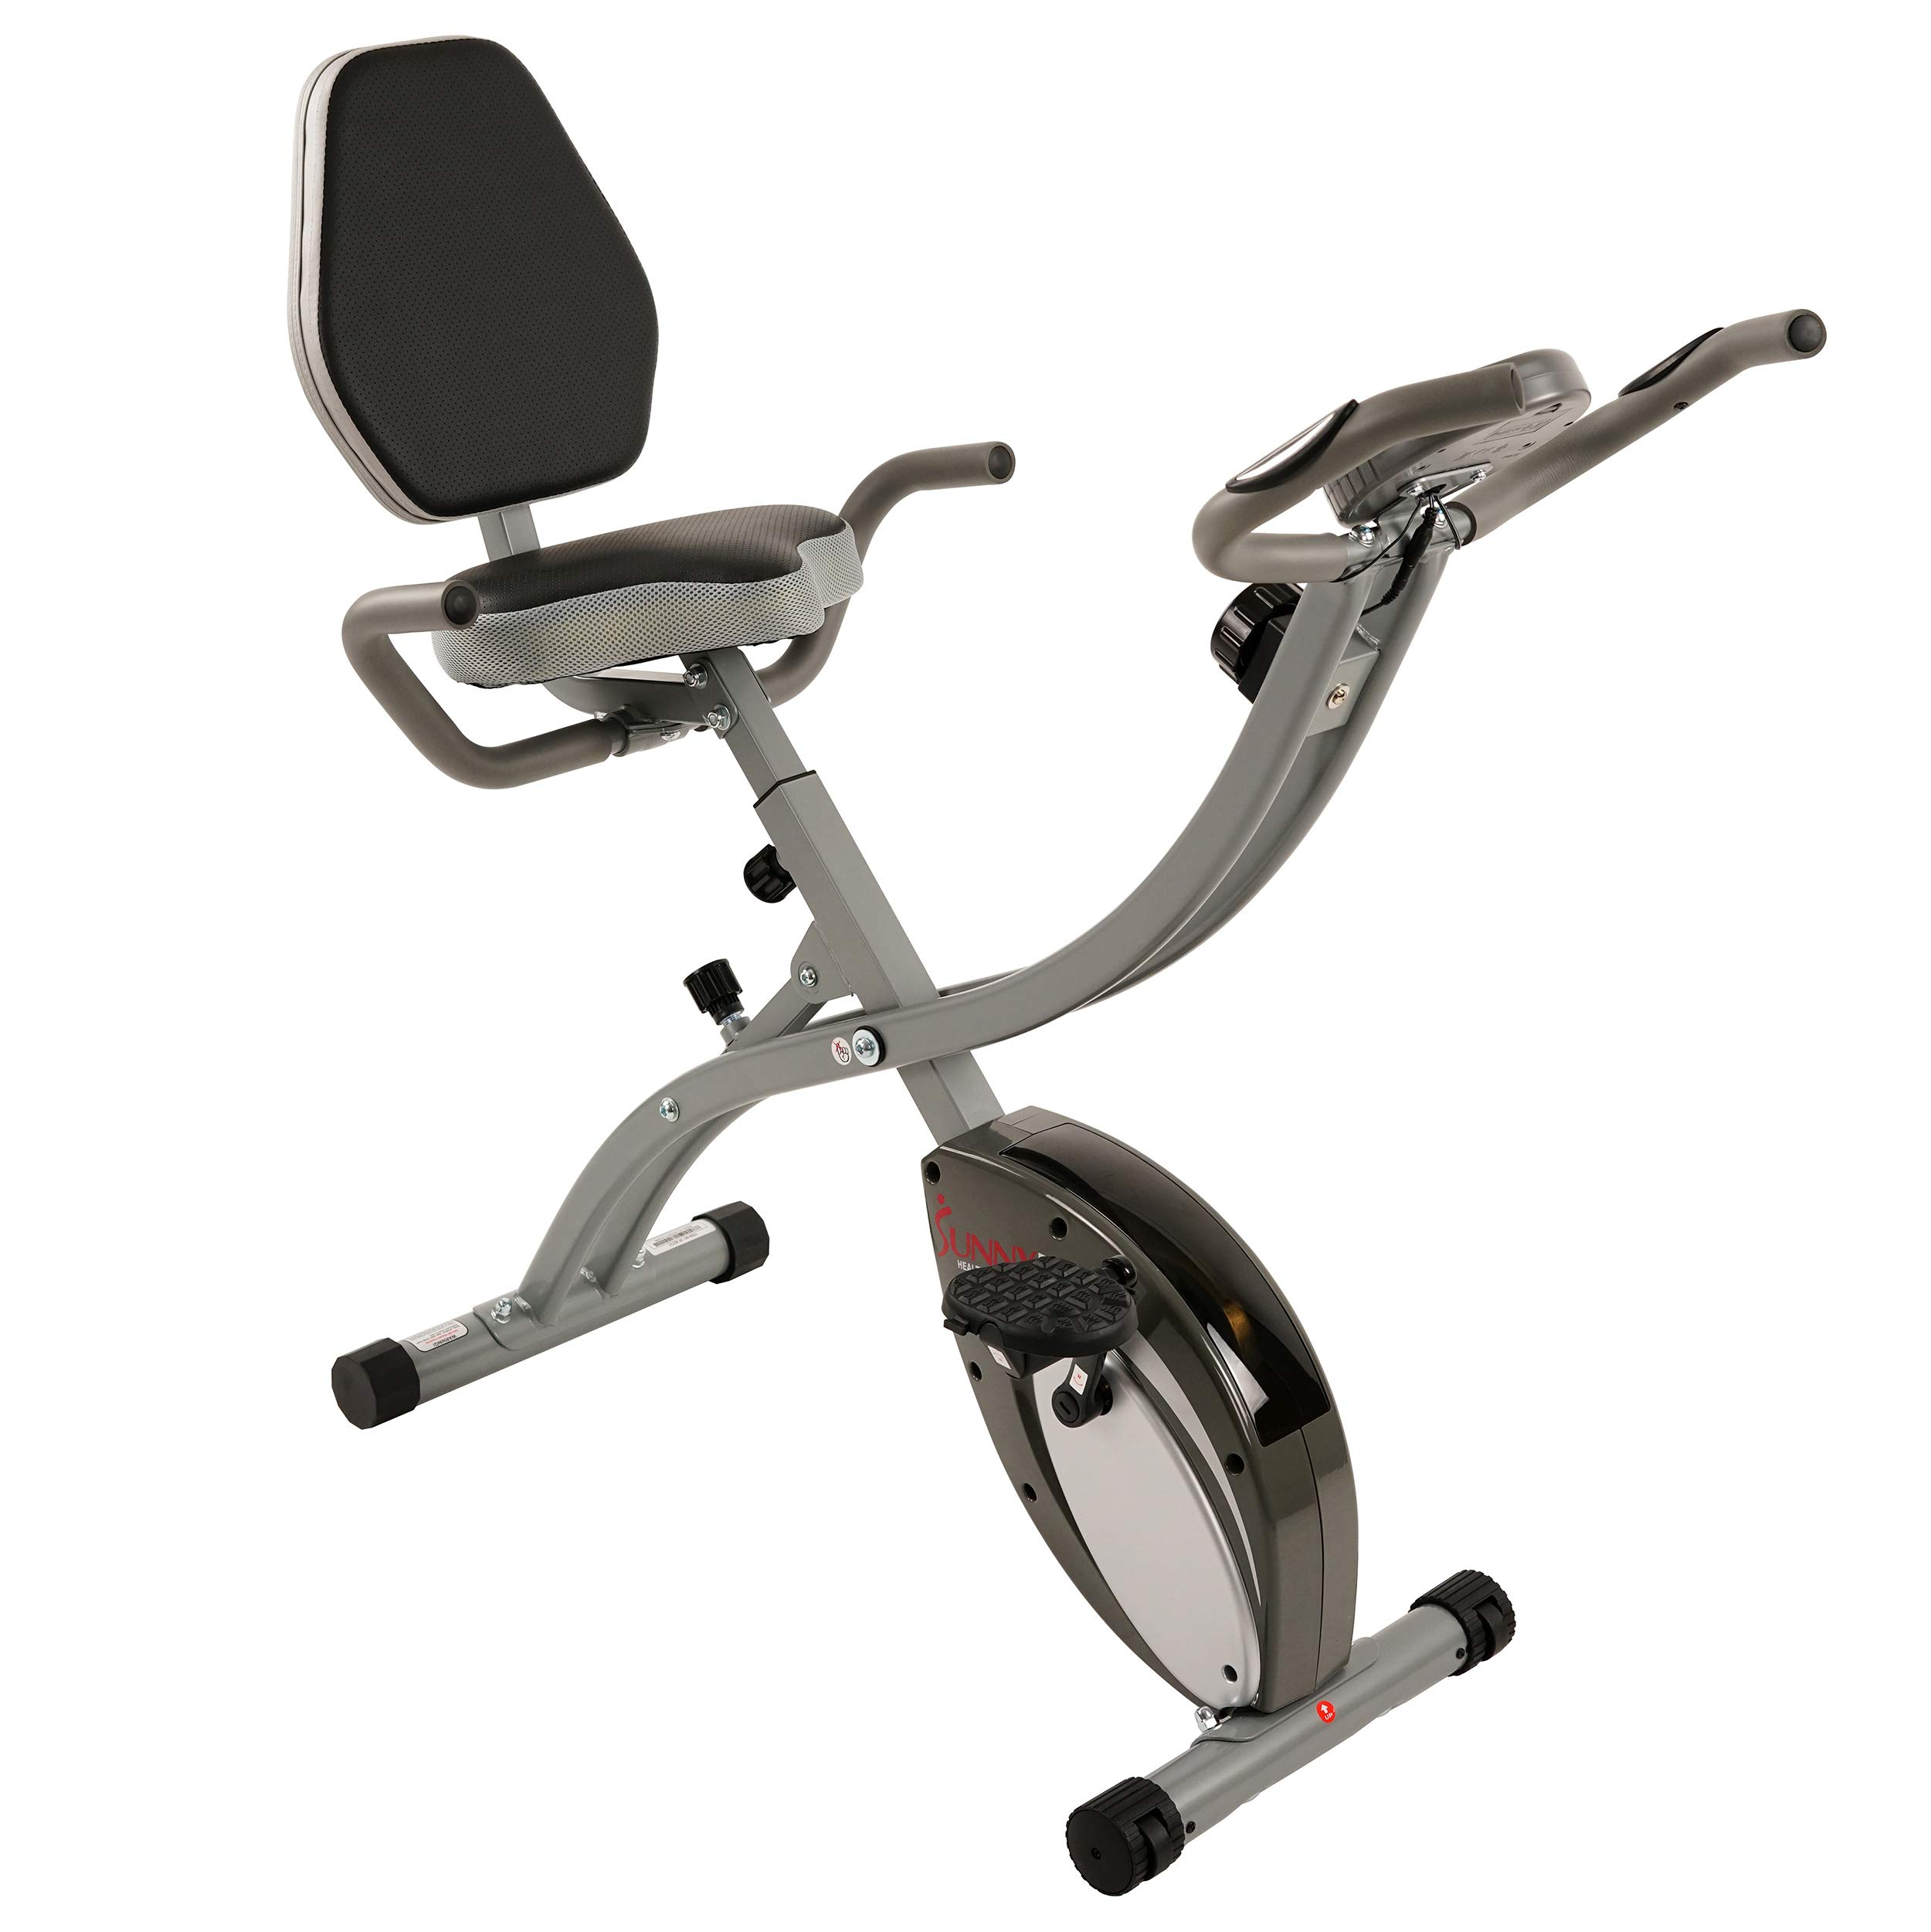 Sunny Health & Fitness Comfort XL Folding Semi-Recumbent Bike - SF-B2721 by Sunny Health & Fitness (Image #4)